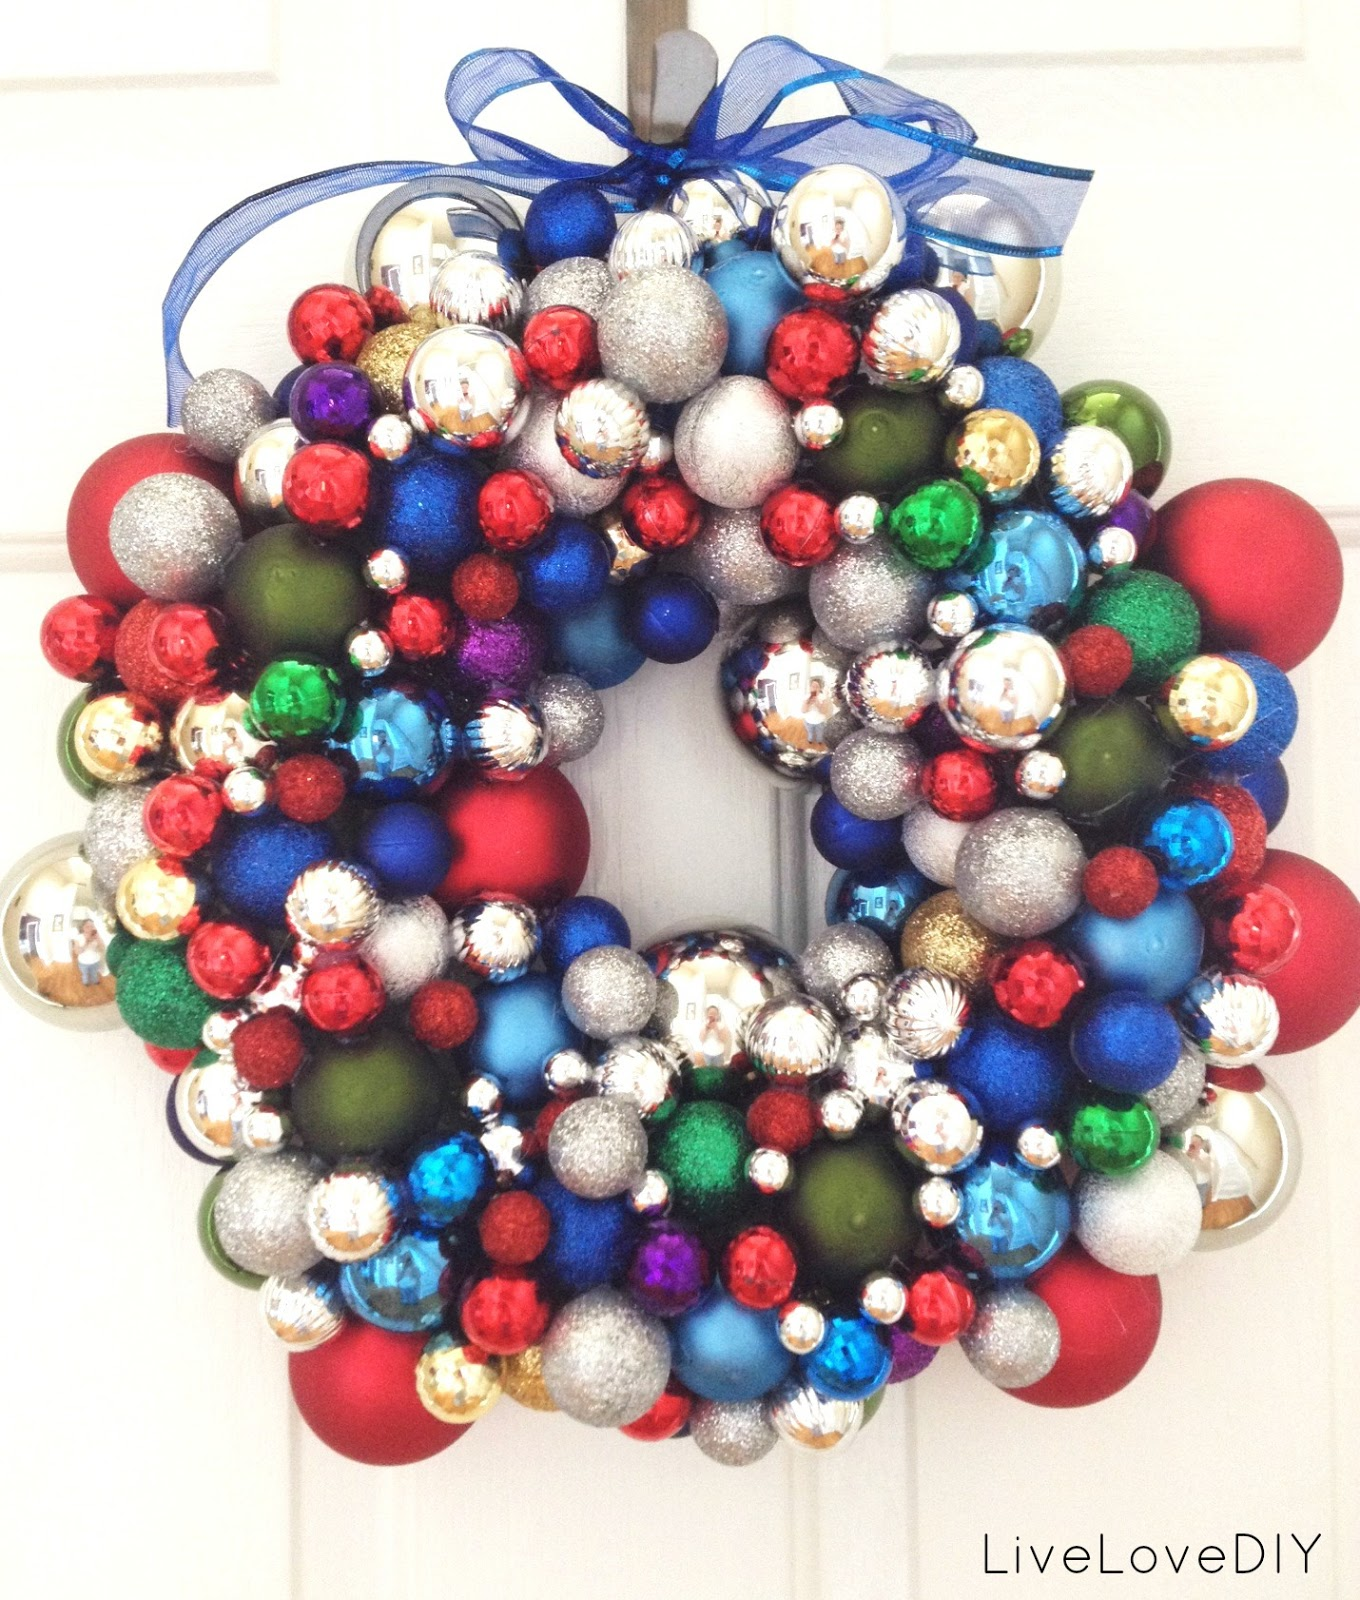 LiveLoveDIY: How To Make A Christmas Ornament Wreath